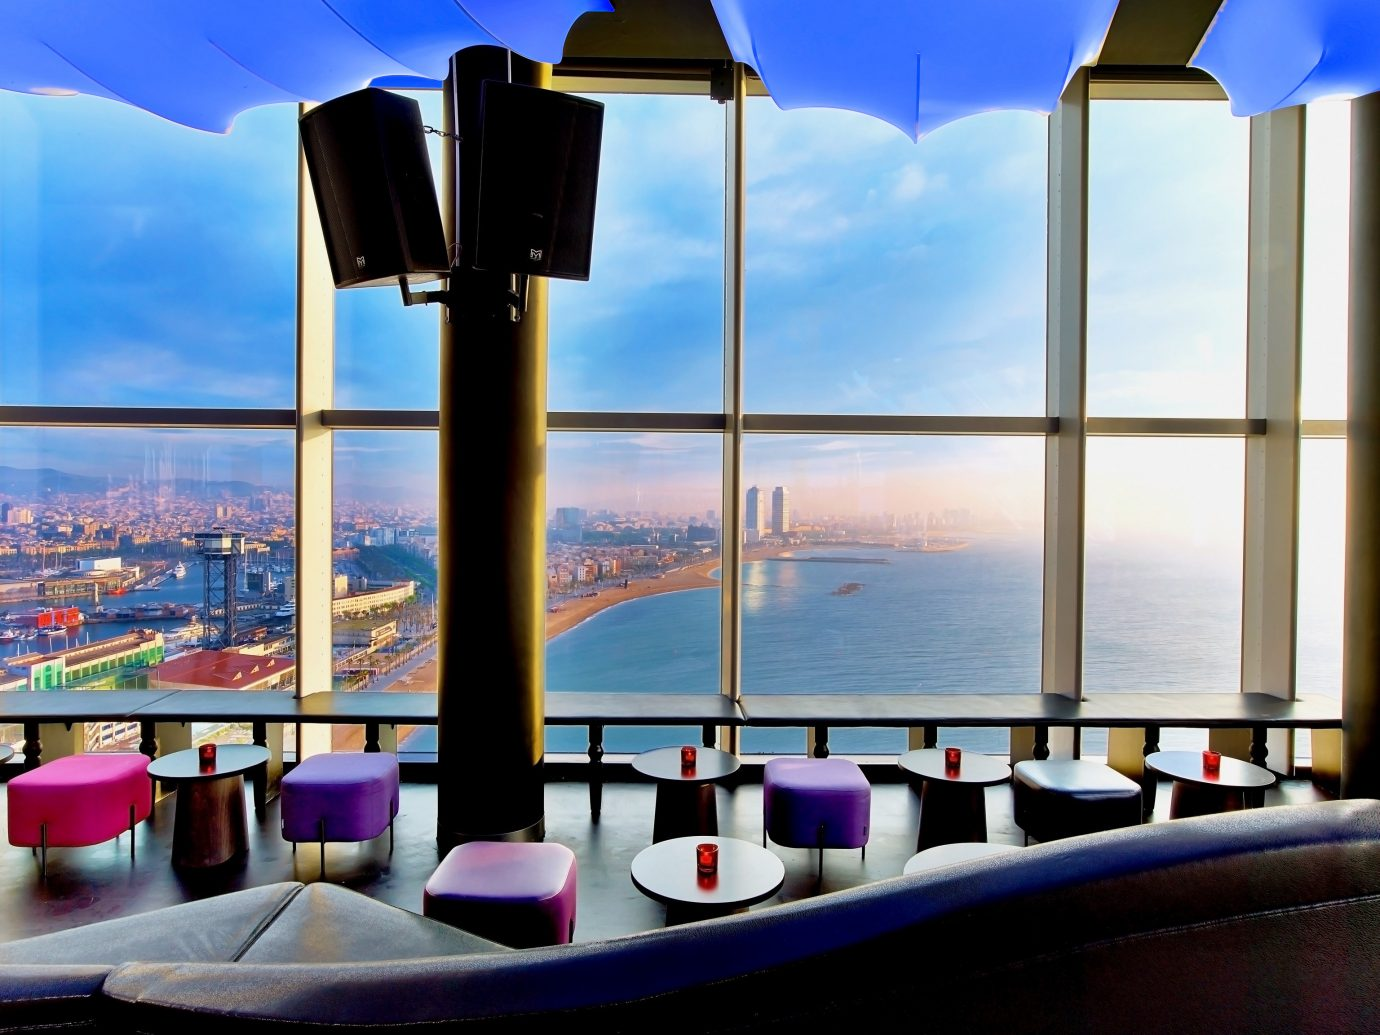 Hotels sky window restaurant Resort vacation lighting interior design overlooking